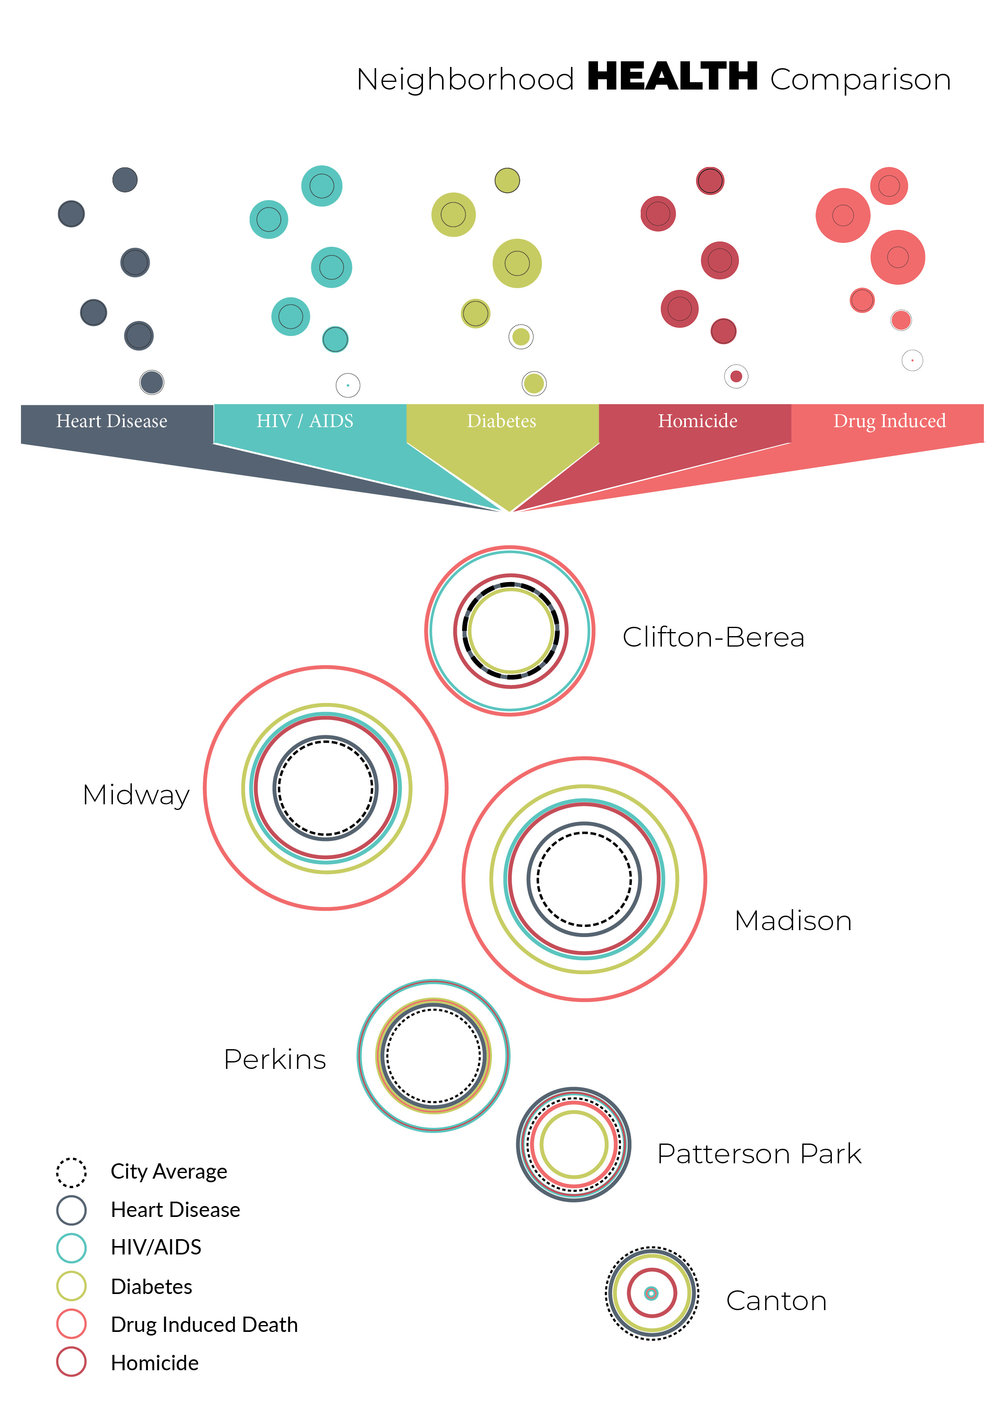 This poster uses circles (which mimic the geographic area of each neighborhood)to demonstrate the rates of death among five health indicators as compared to the city average. The top allows viewers to see the difference individually and the bottom combines them to demonstrate which indicators each neighborhood should focus on reducing.